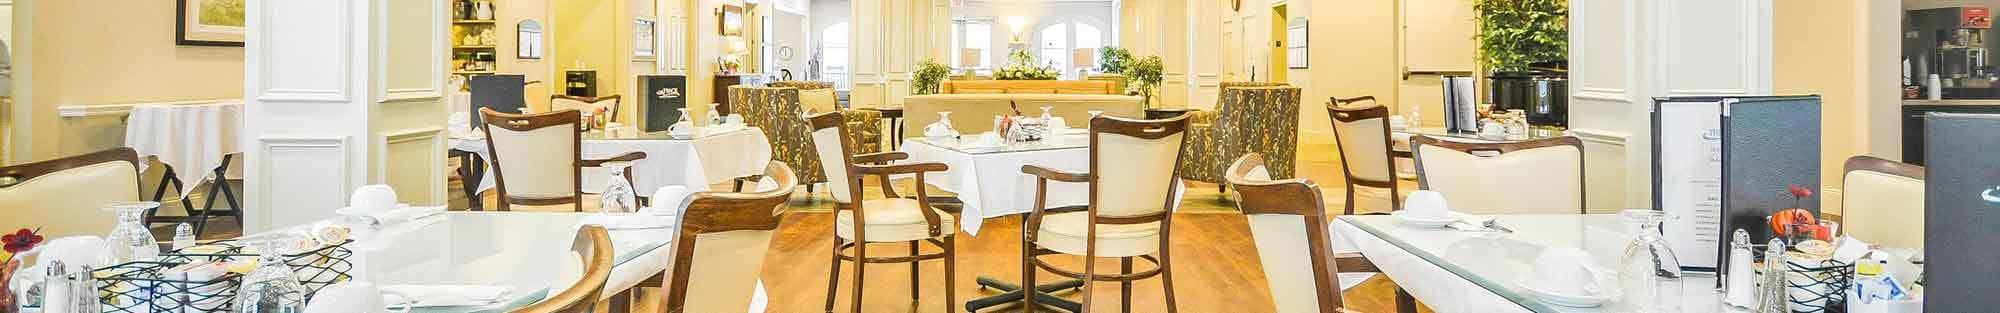 Carefree Senior Living Options in Covington,LA